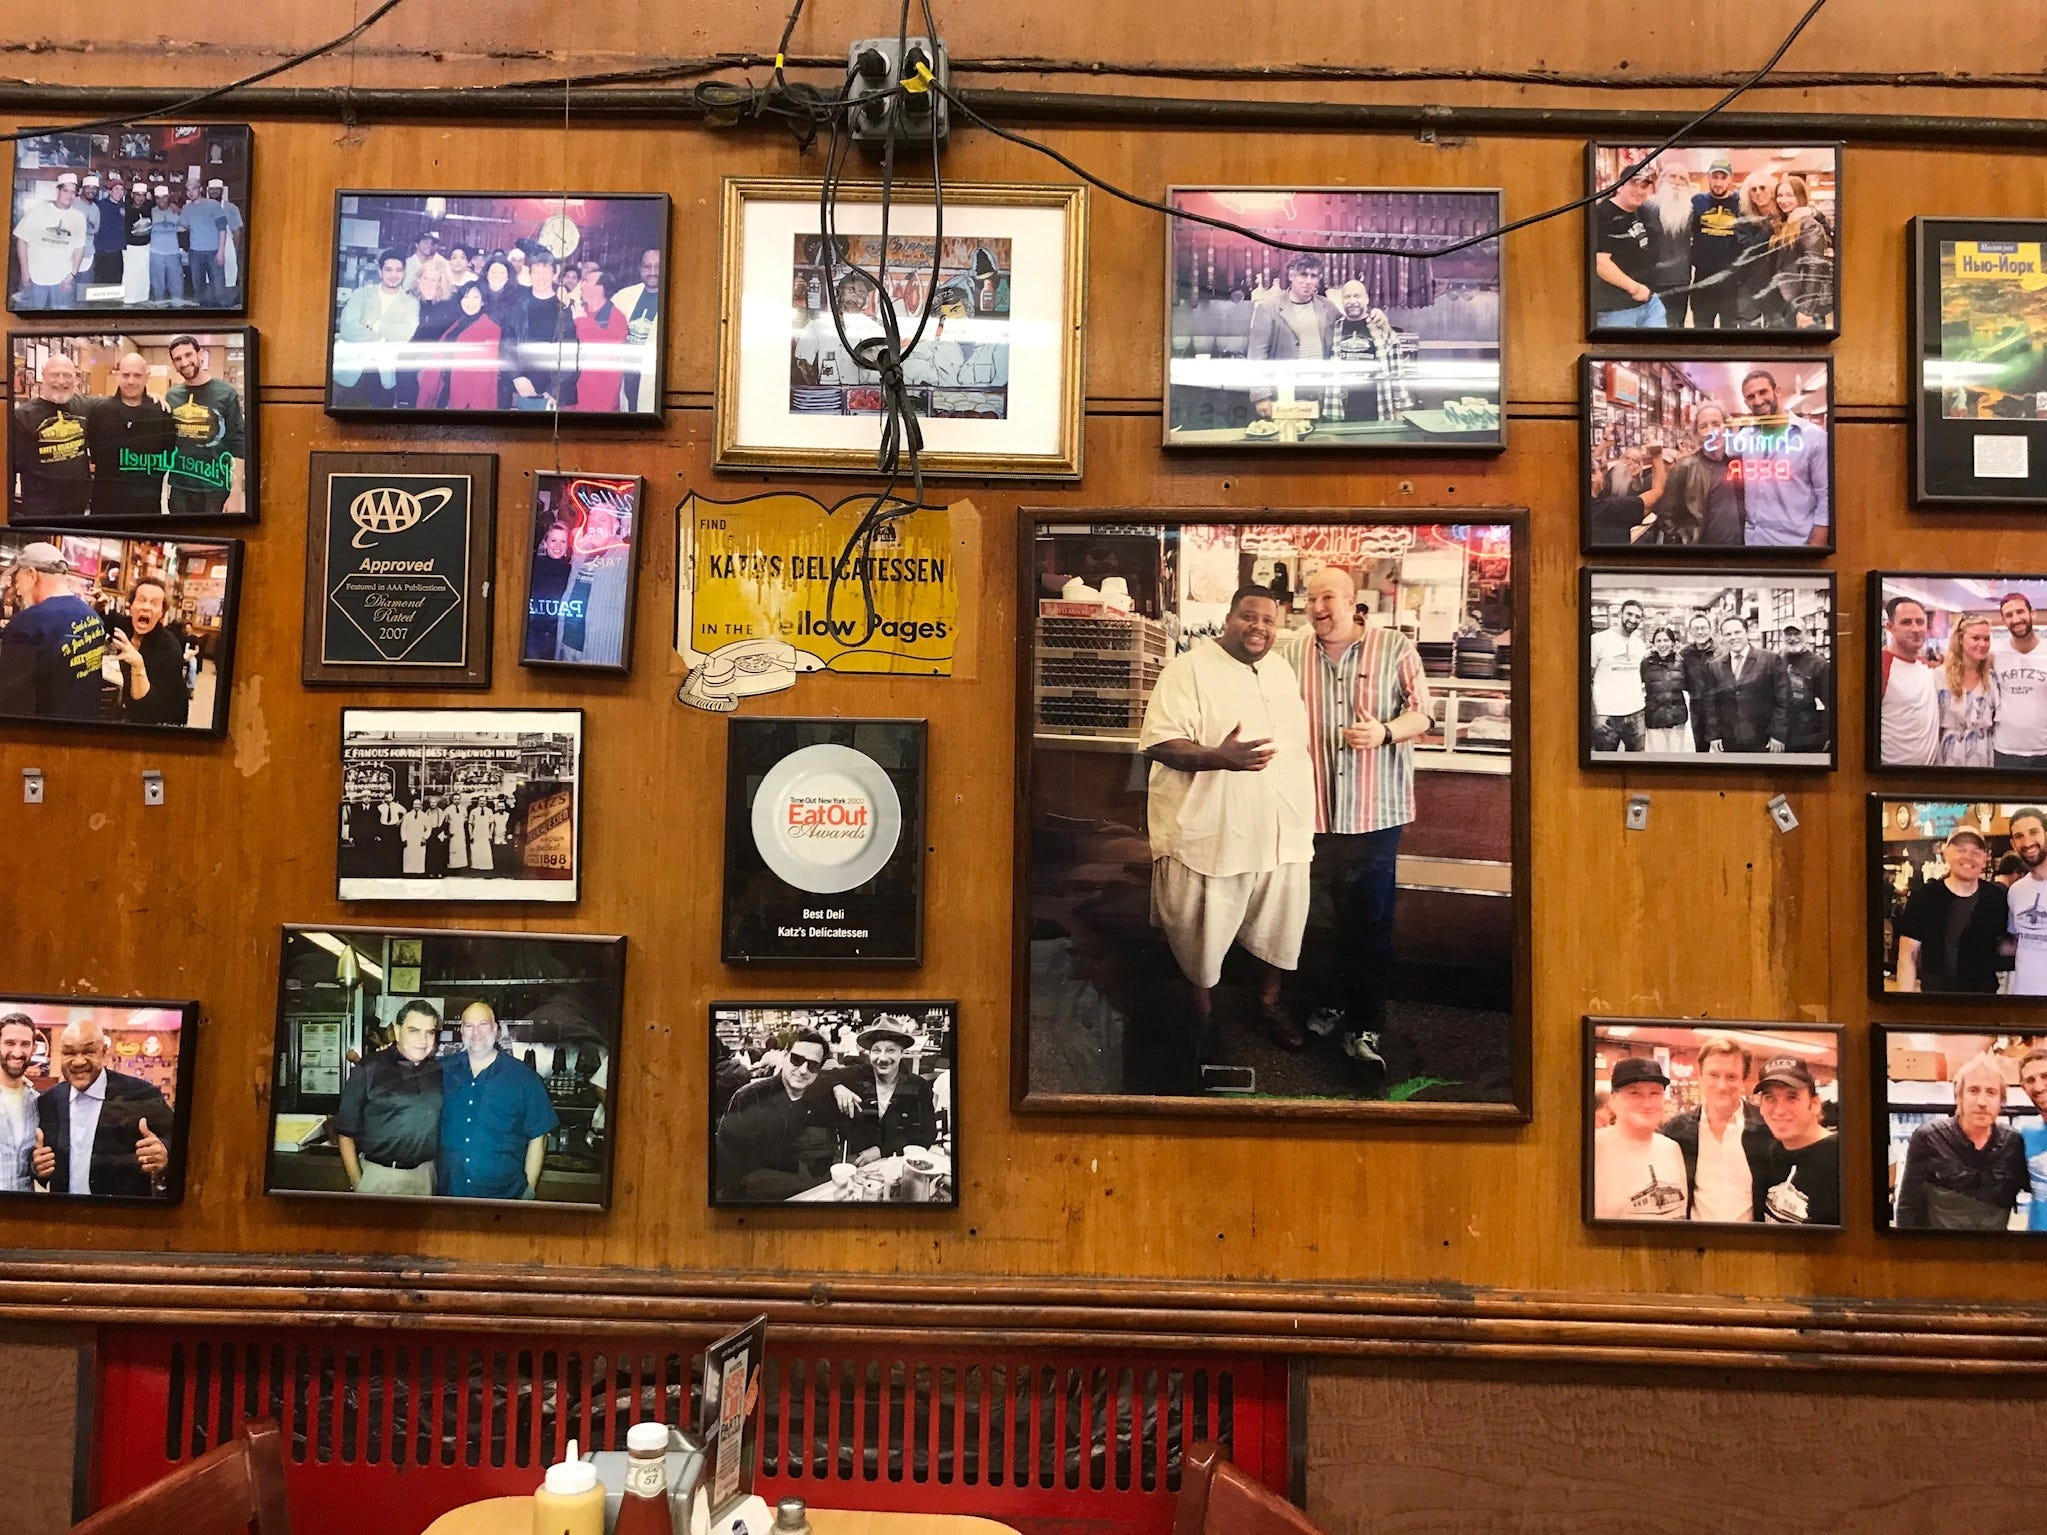 Some of the framed photos are of beloved New York celebrities, but many are unrecognizable, and part of the fun is trying to figure it all out (Billy Crystal is here someplace ... ).